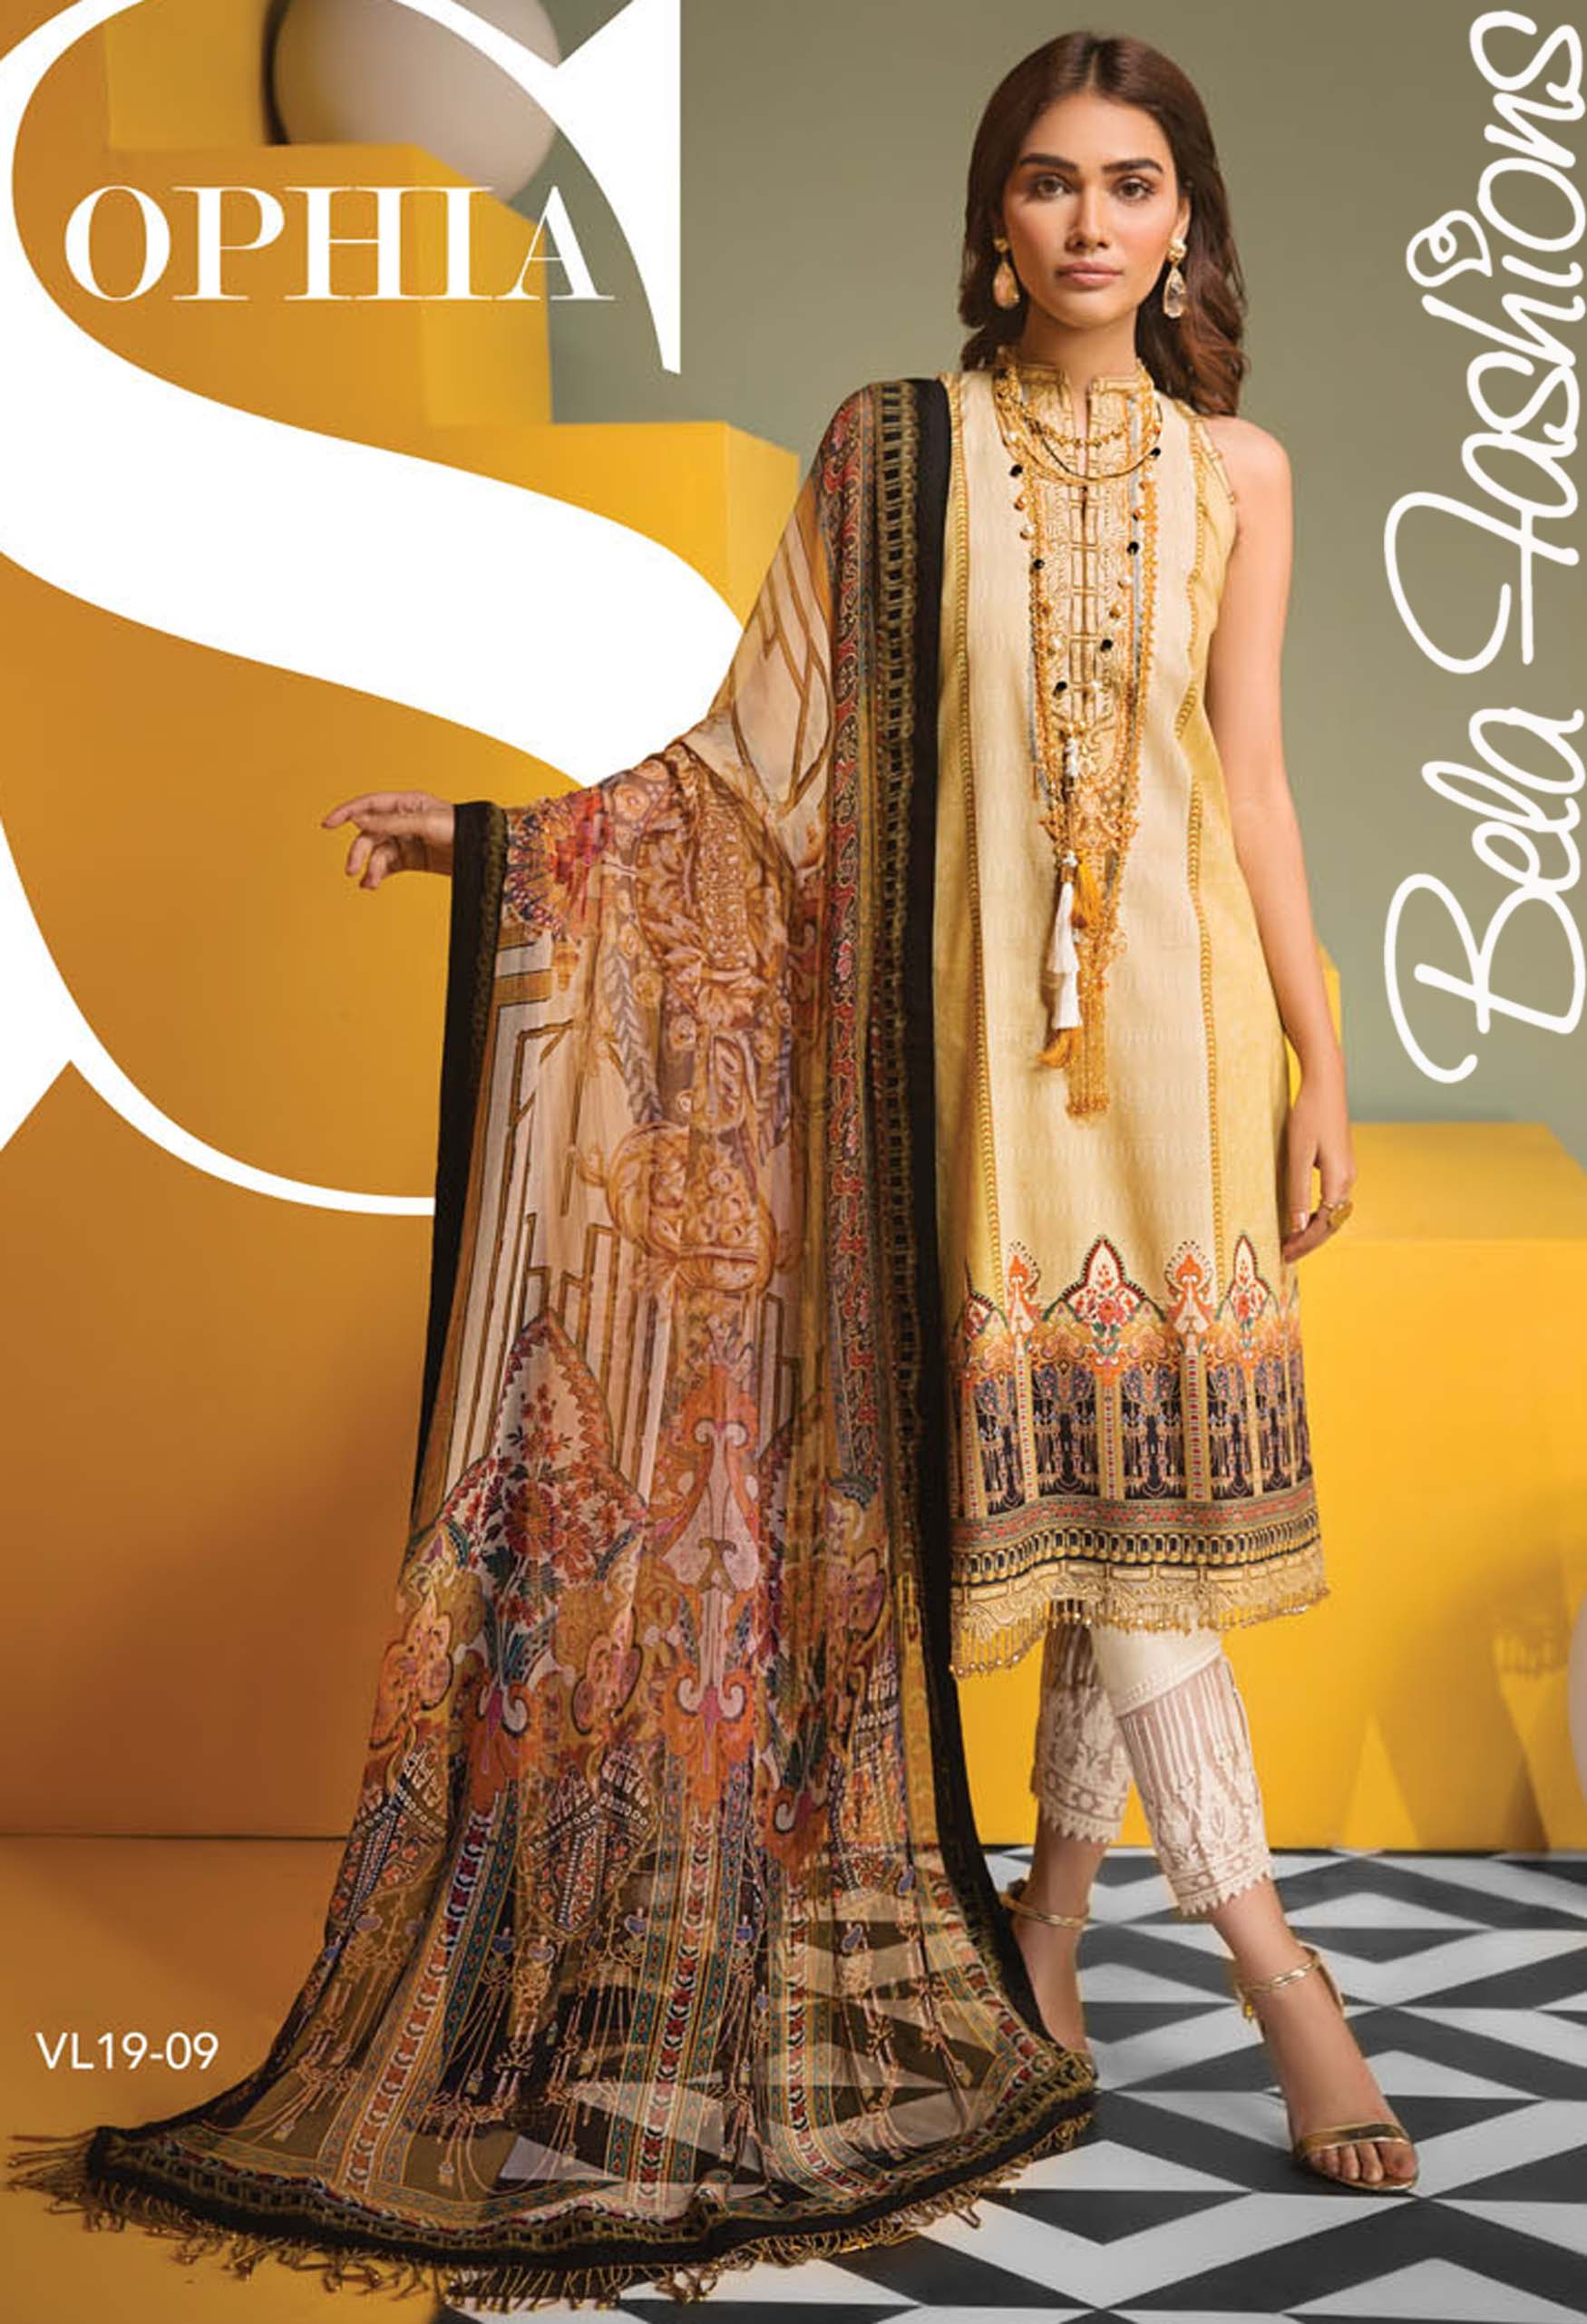 94a301fc91 Viva Anaya By Kiran Chaudhary VL 19 - 09. Sold Out - £35.99 £55.00. Embroidered  lawn 3 pcs suits ...